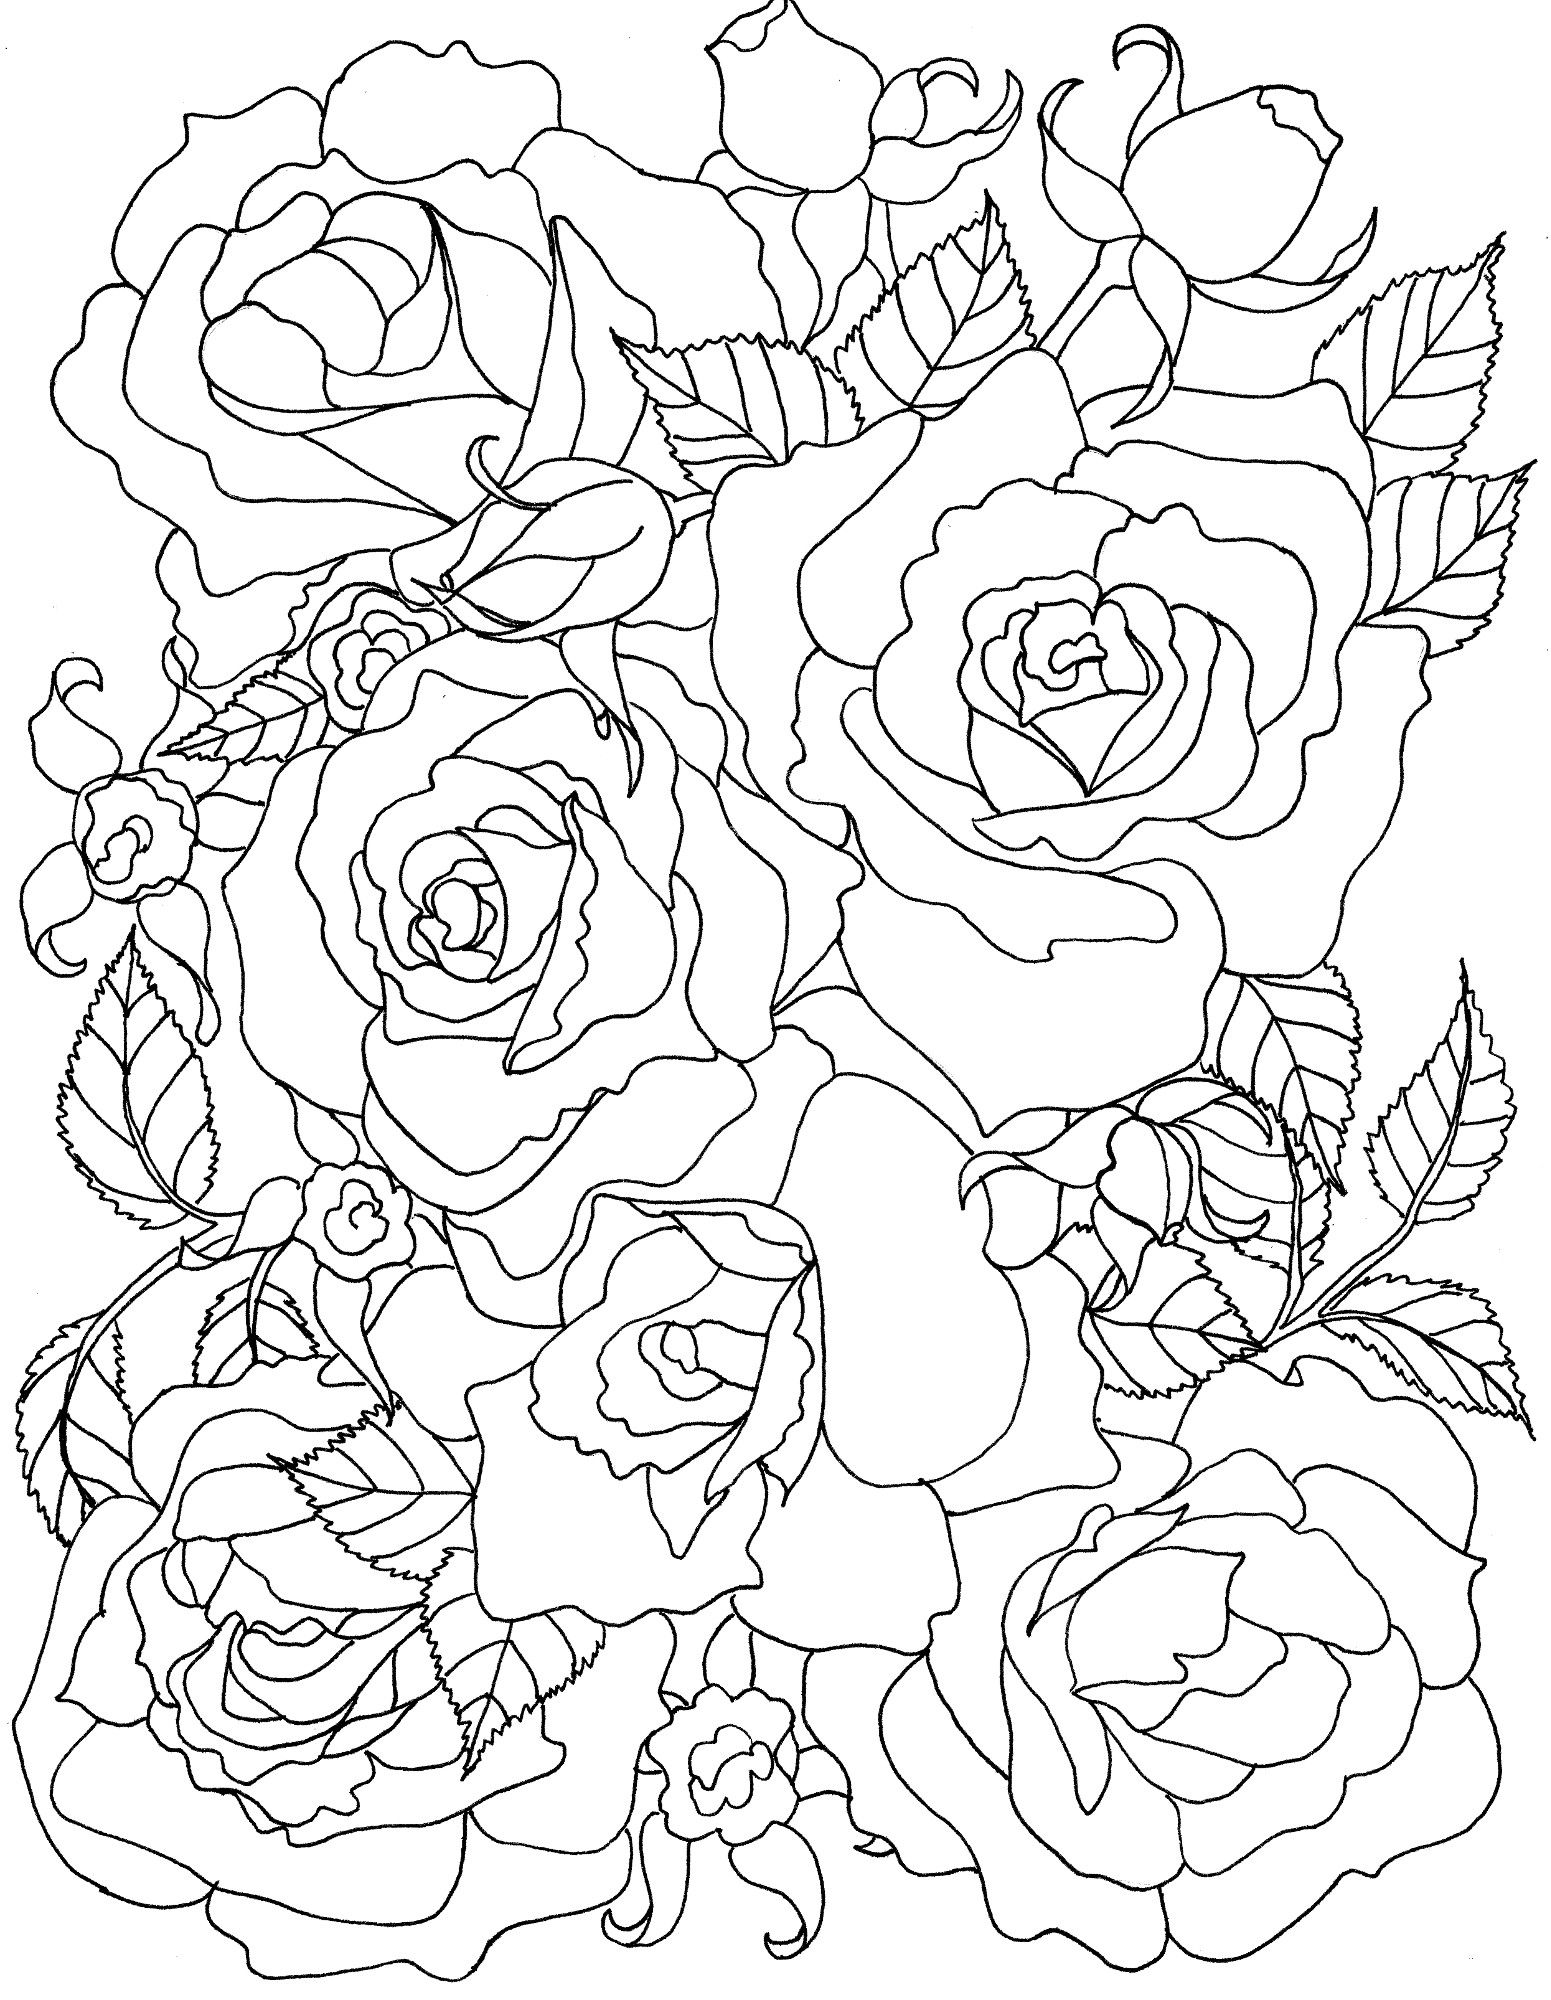 original and fun coloring pages | Pinterest | Happy family ...